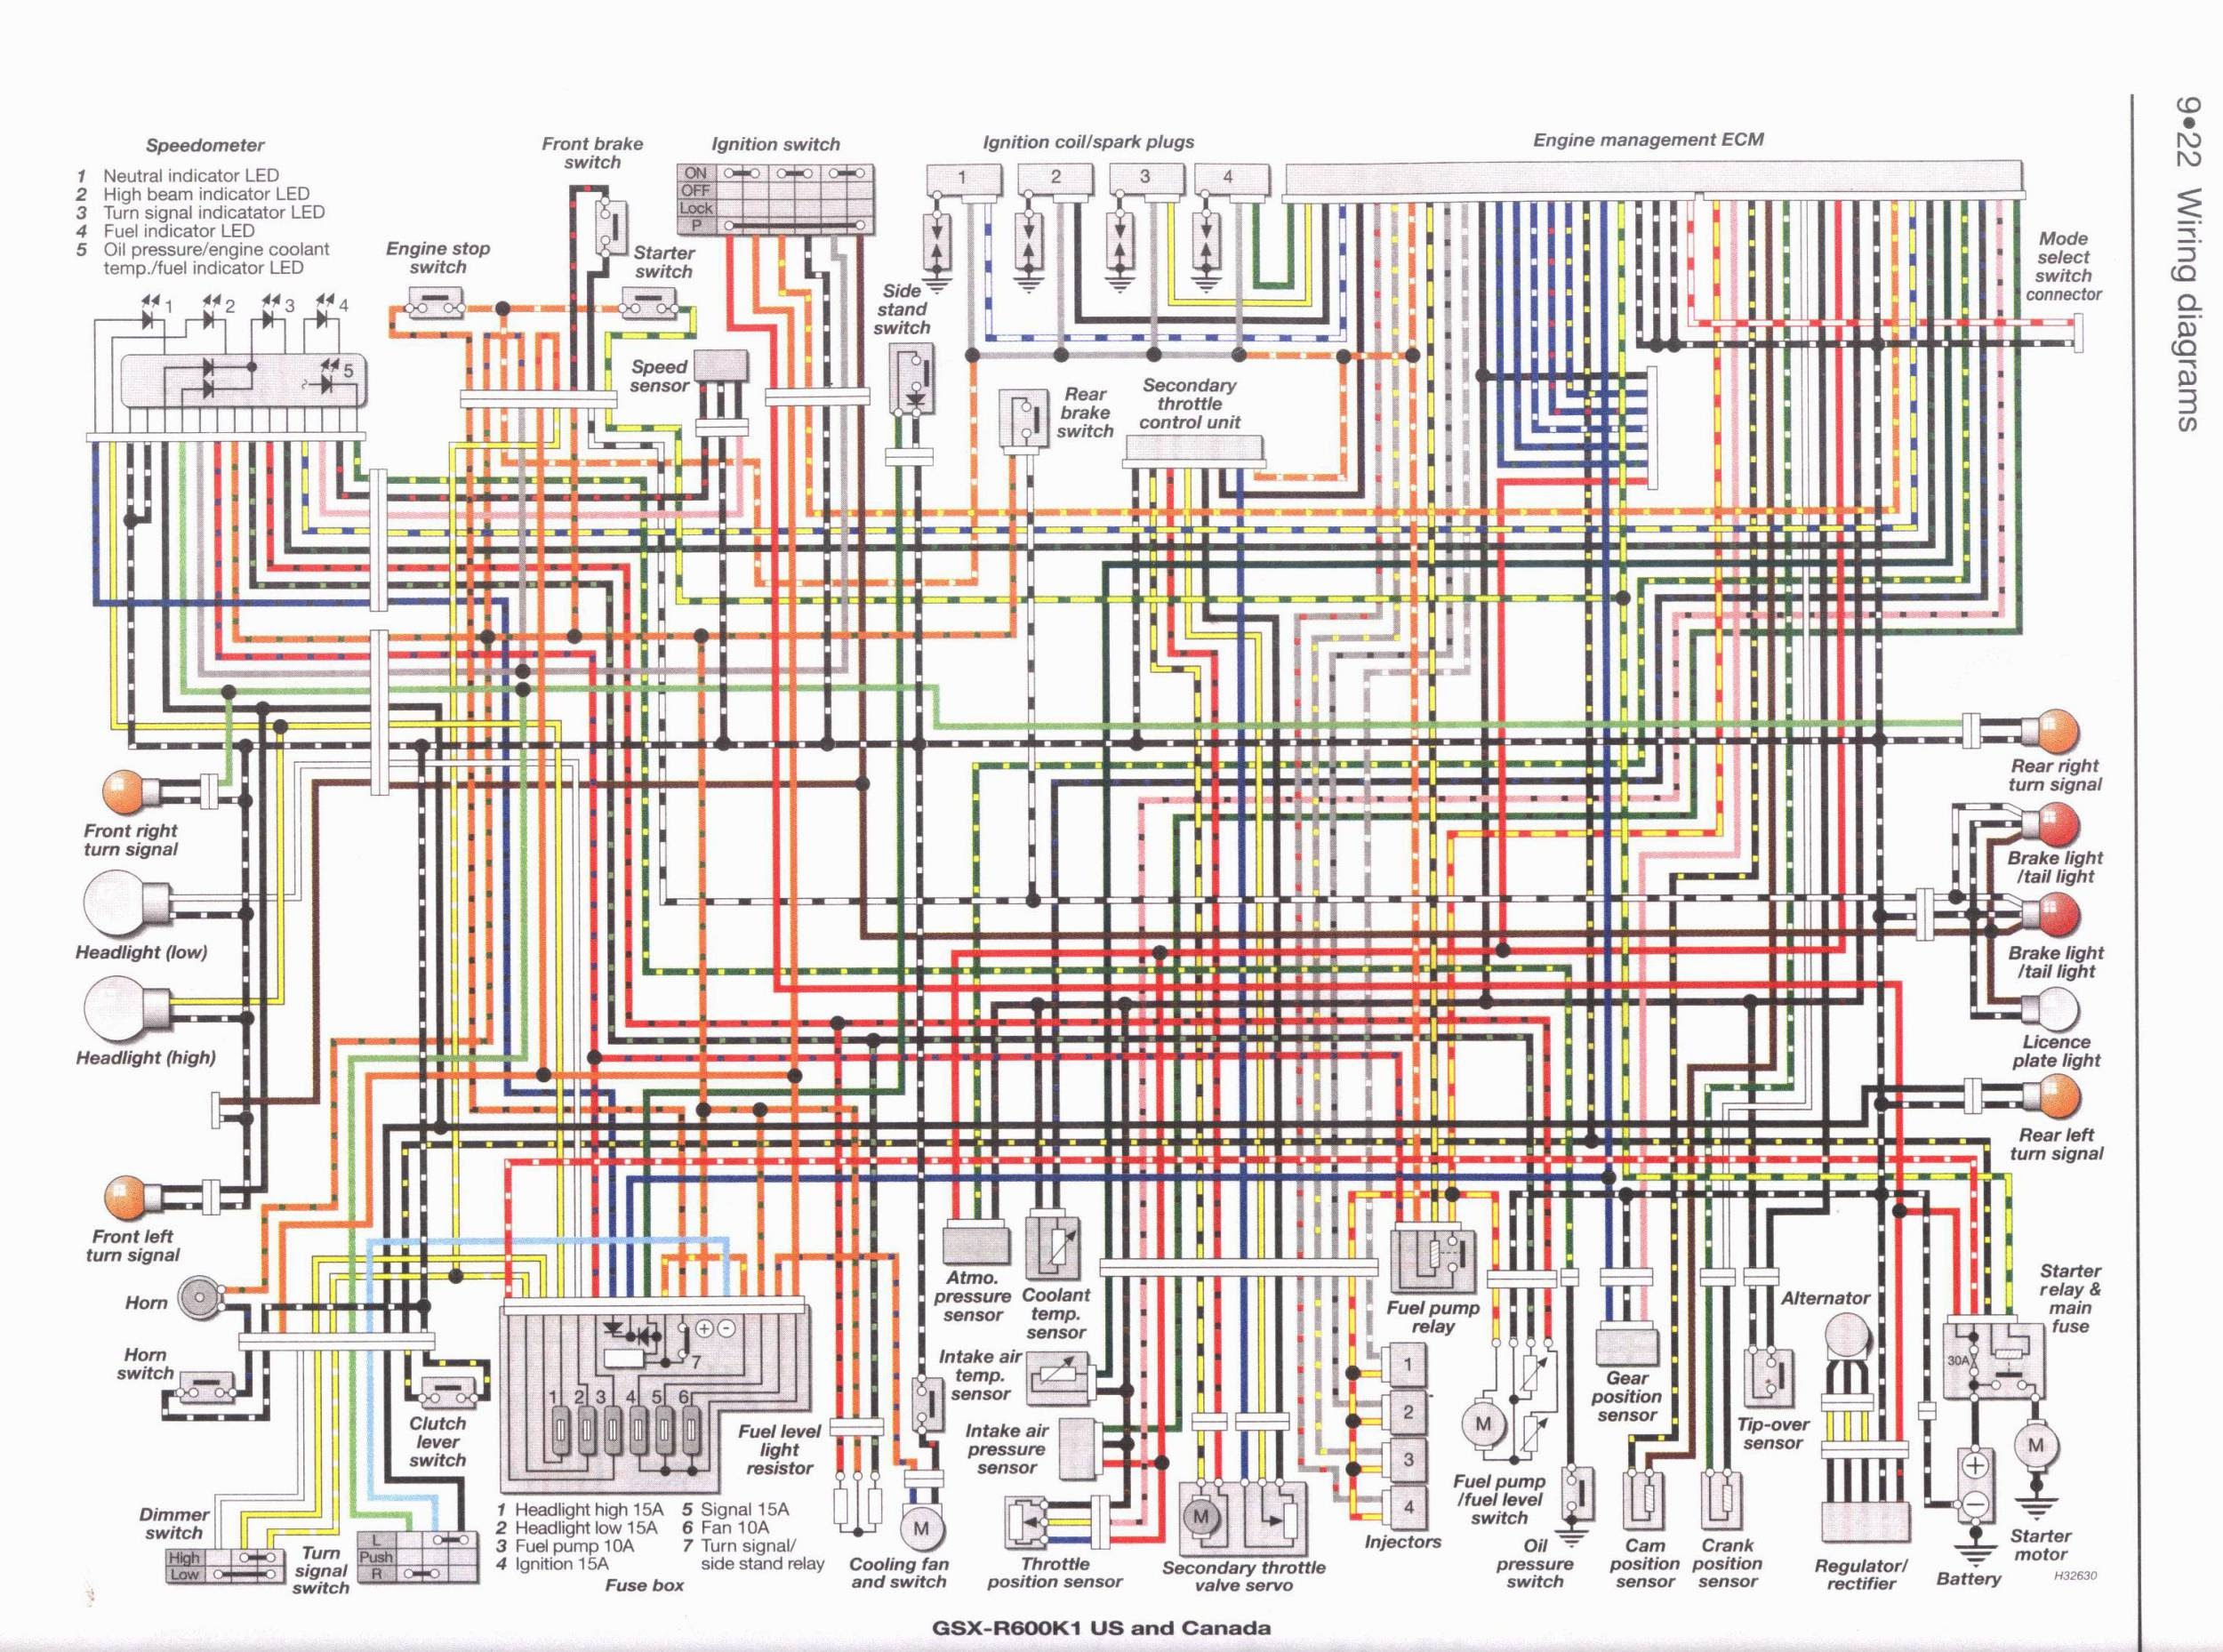 Diagram Tl 1000 R Wiring Diagram Full Version Hd Quality Wiring Diagram Diagramfelizz Beppecacopardo It